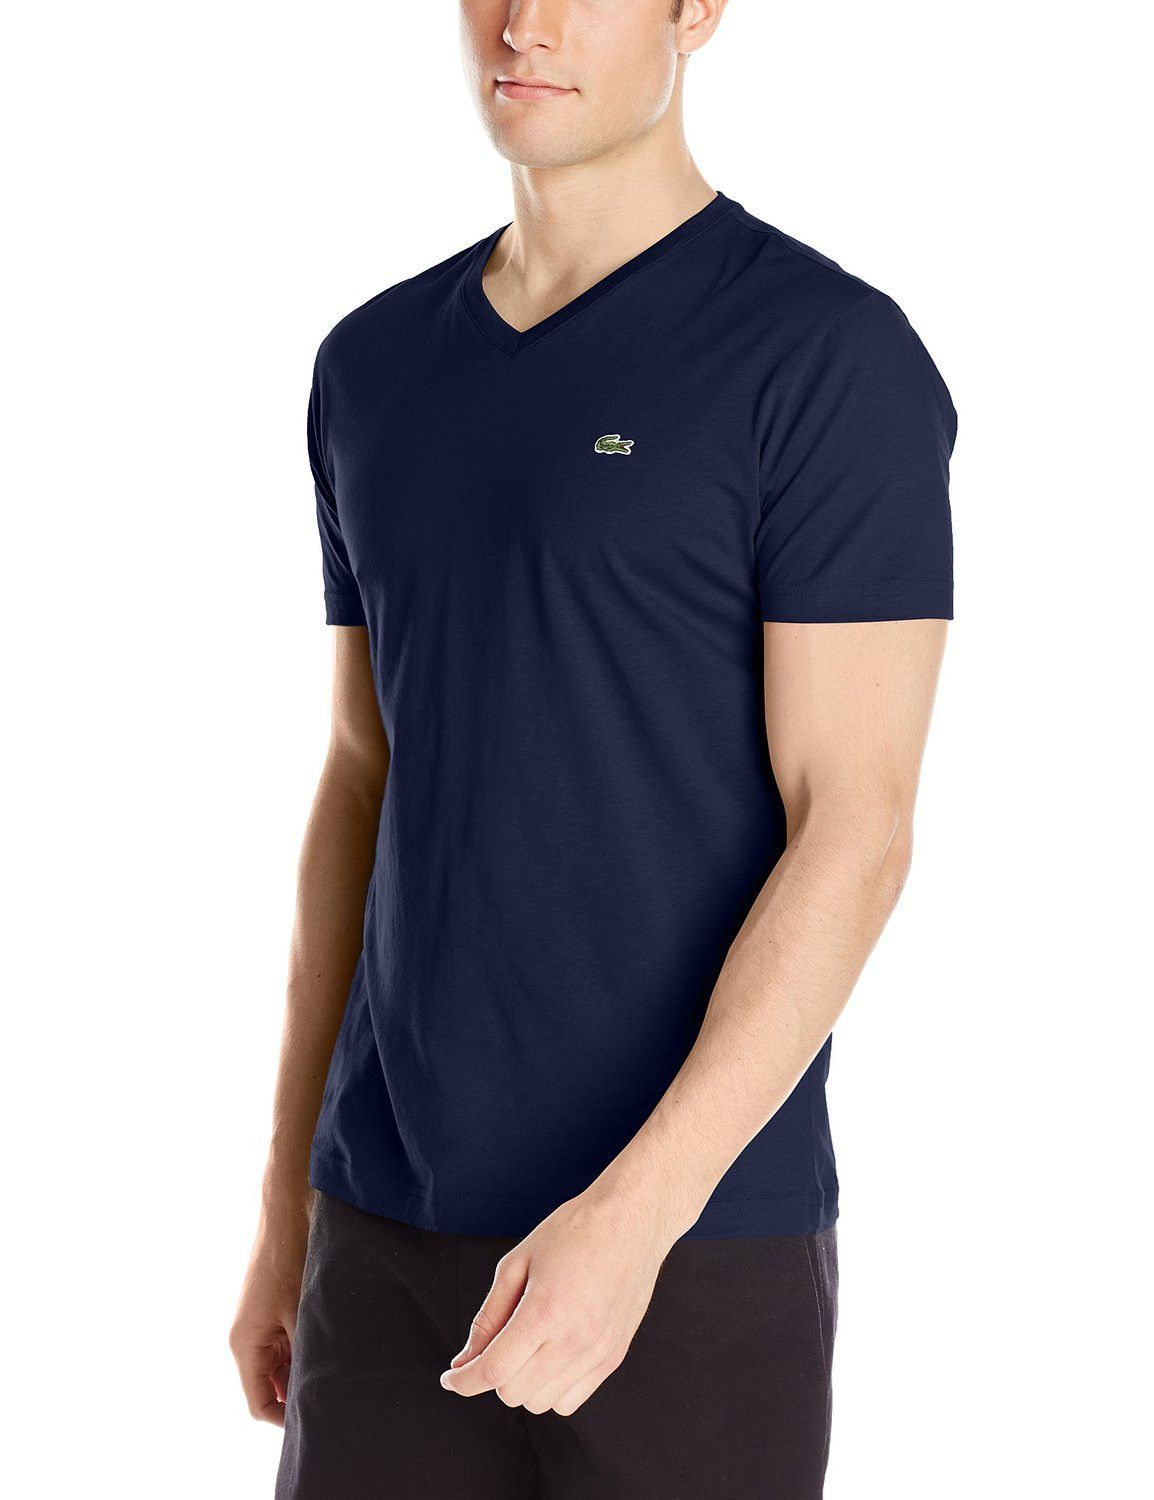 Behind the chair shirts - Lacoste Short Sleeve Jersey Pima Regular Fit V Neck T Shirt Mens